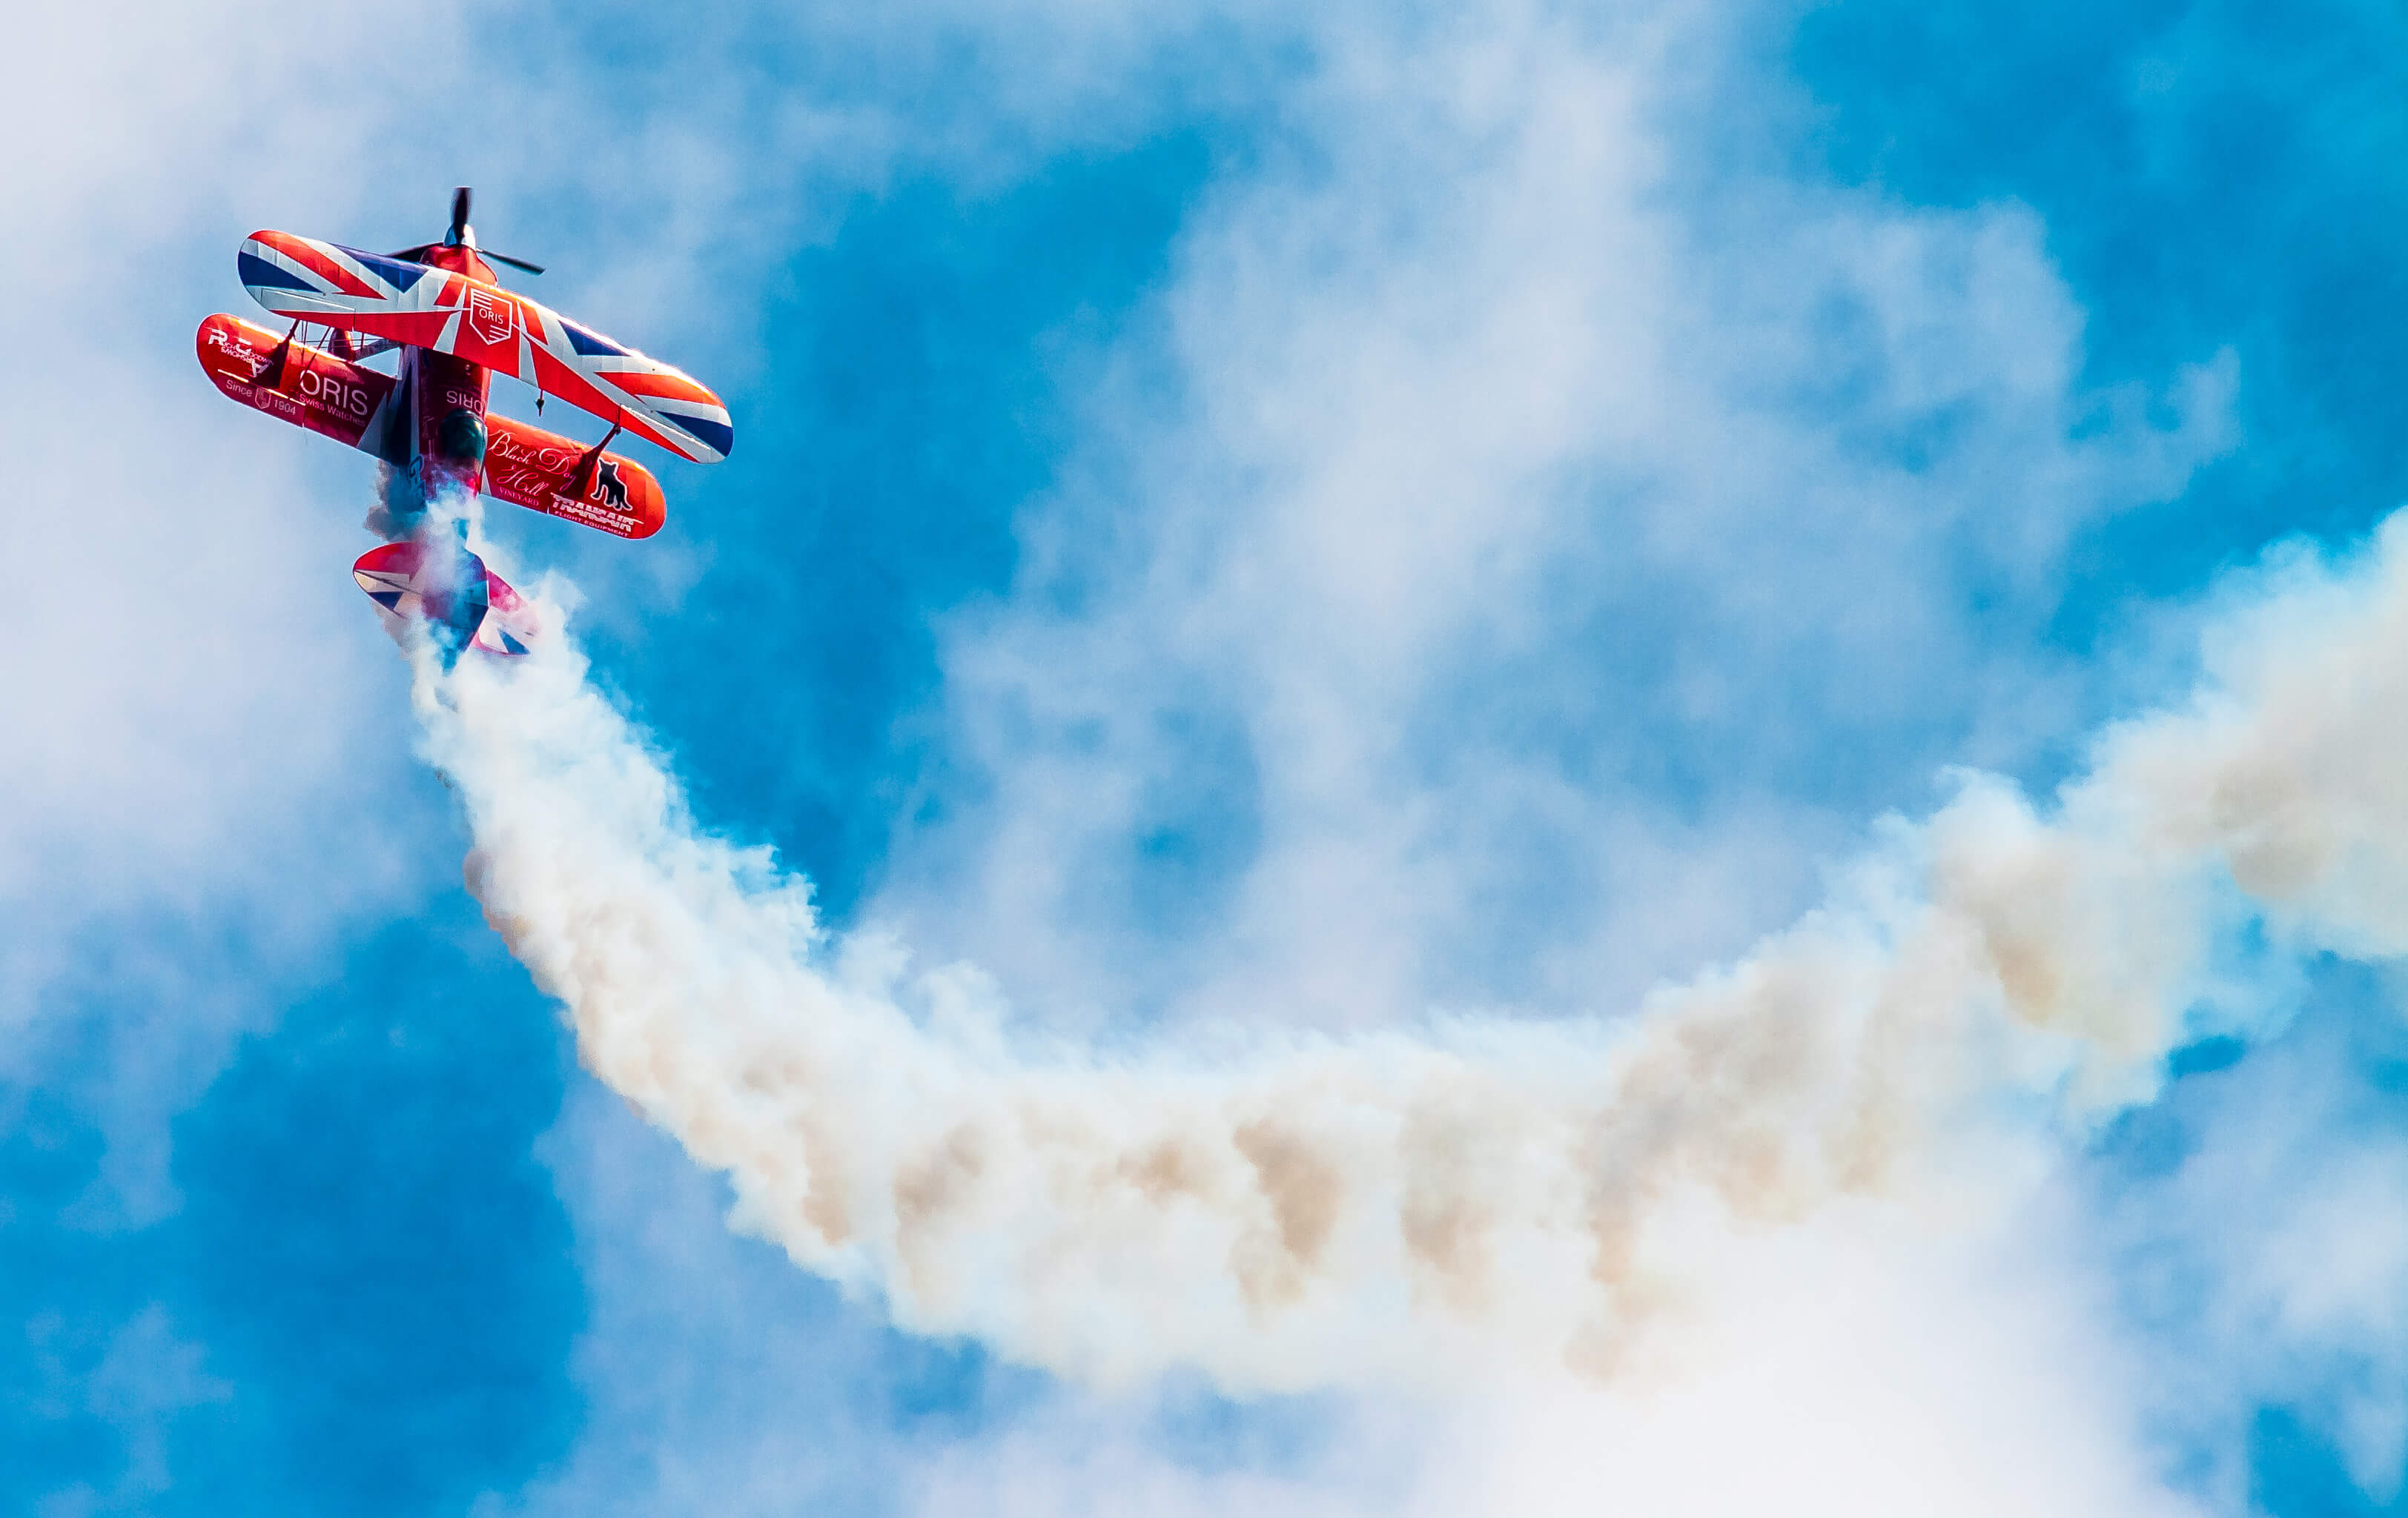 Teignmouth Airshow